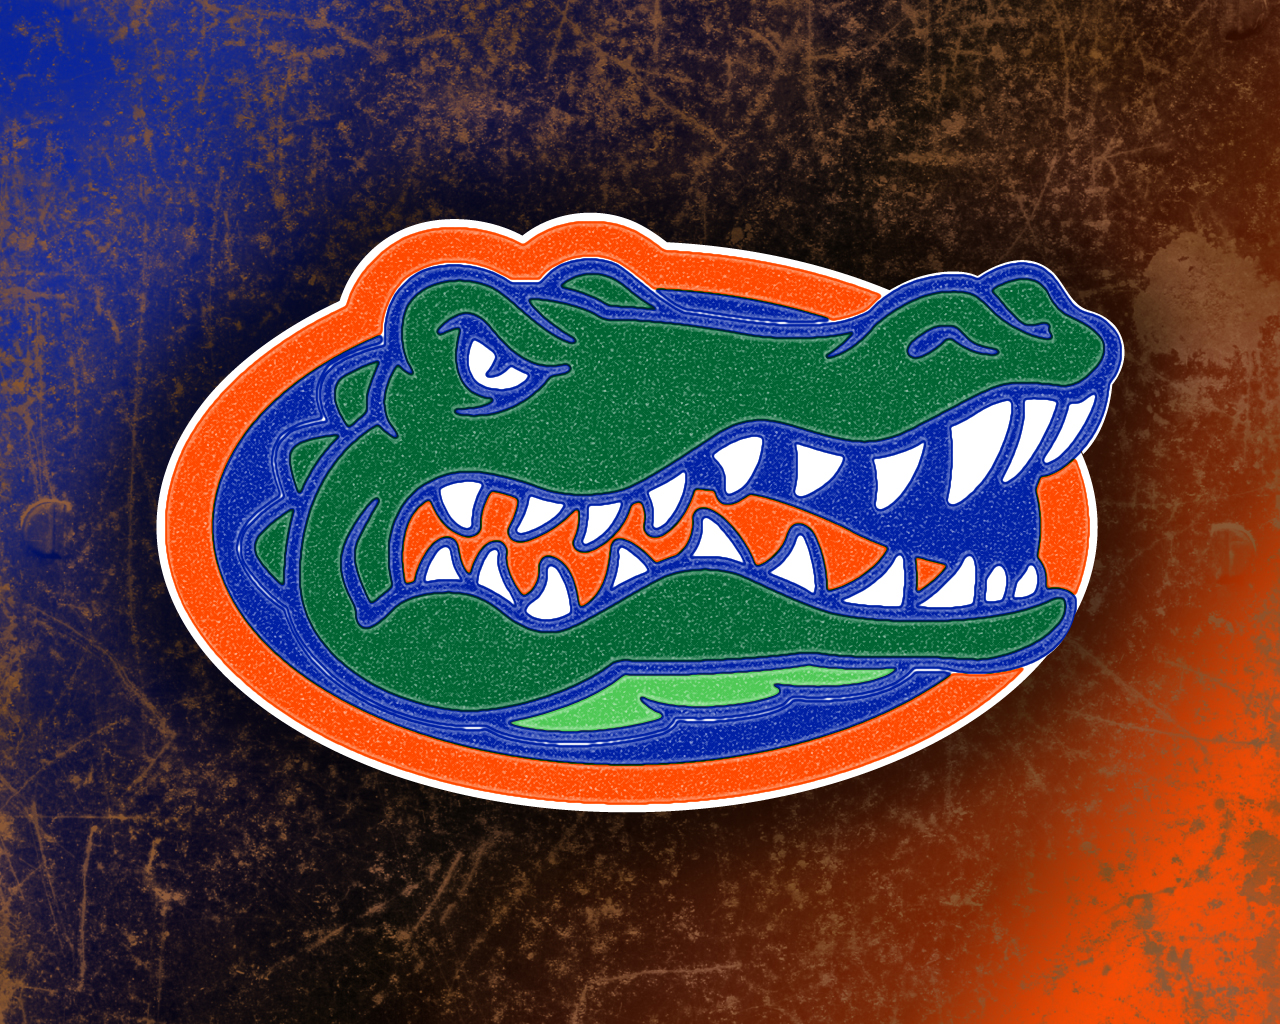 Florida Gators Wallpaper 20634 1280x1024 px